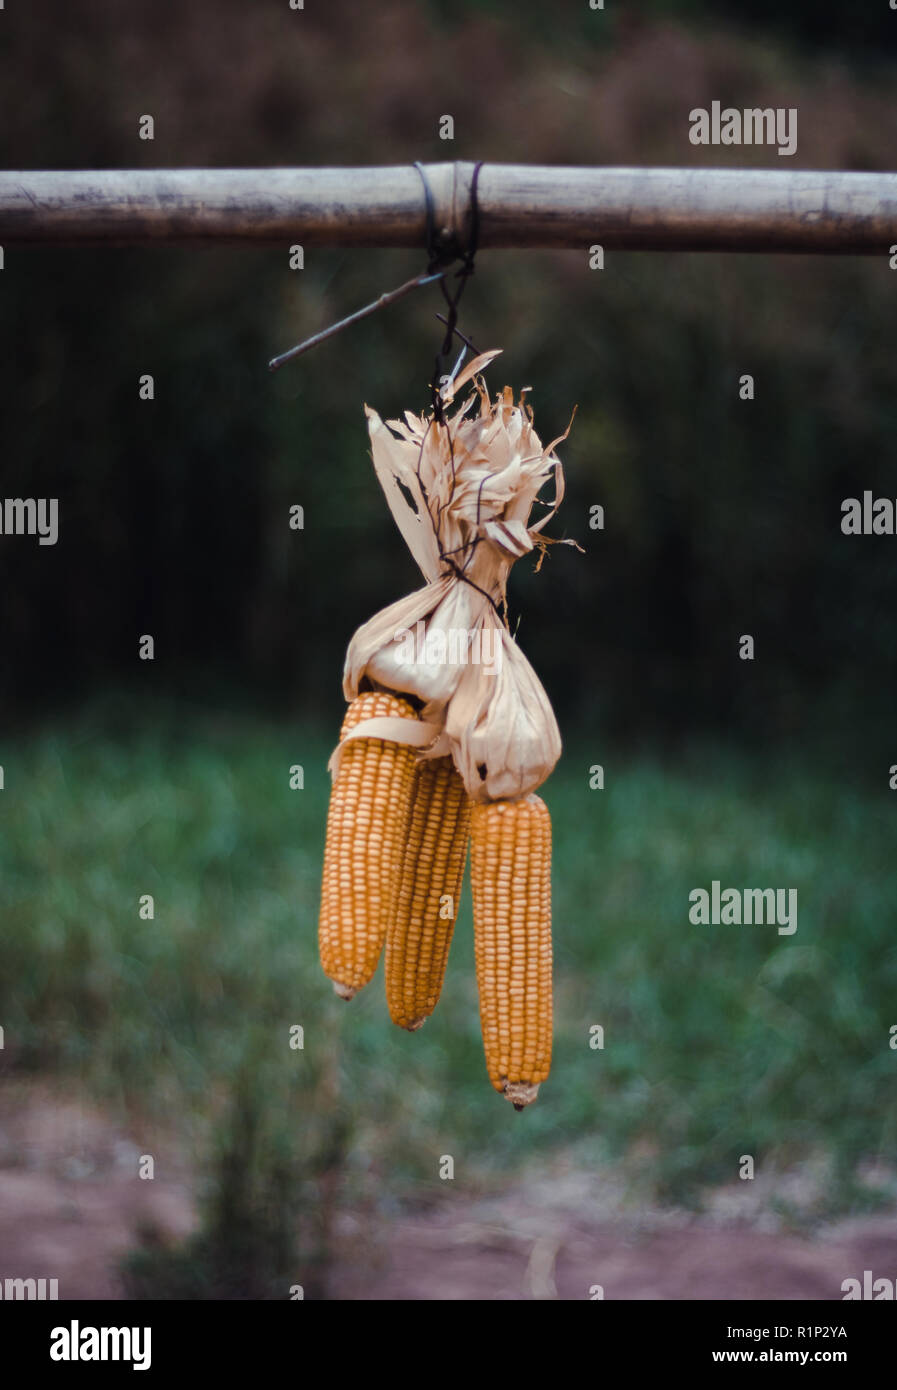 Ninh Binh, Vietnam. Pictured, hanging dried sweetcorn with a blurred background. - Stock Image